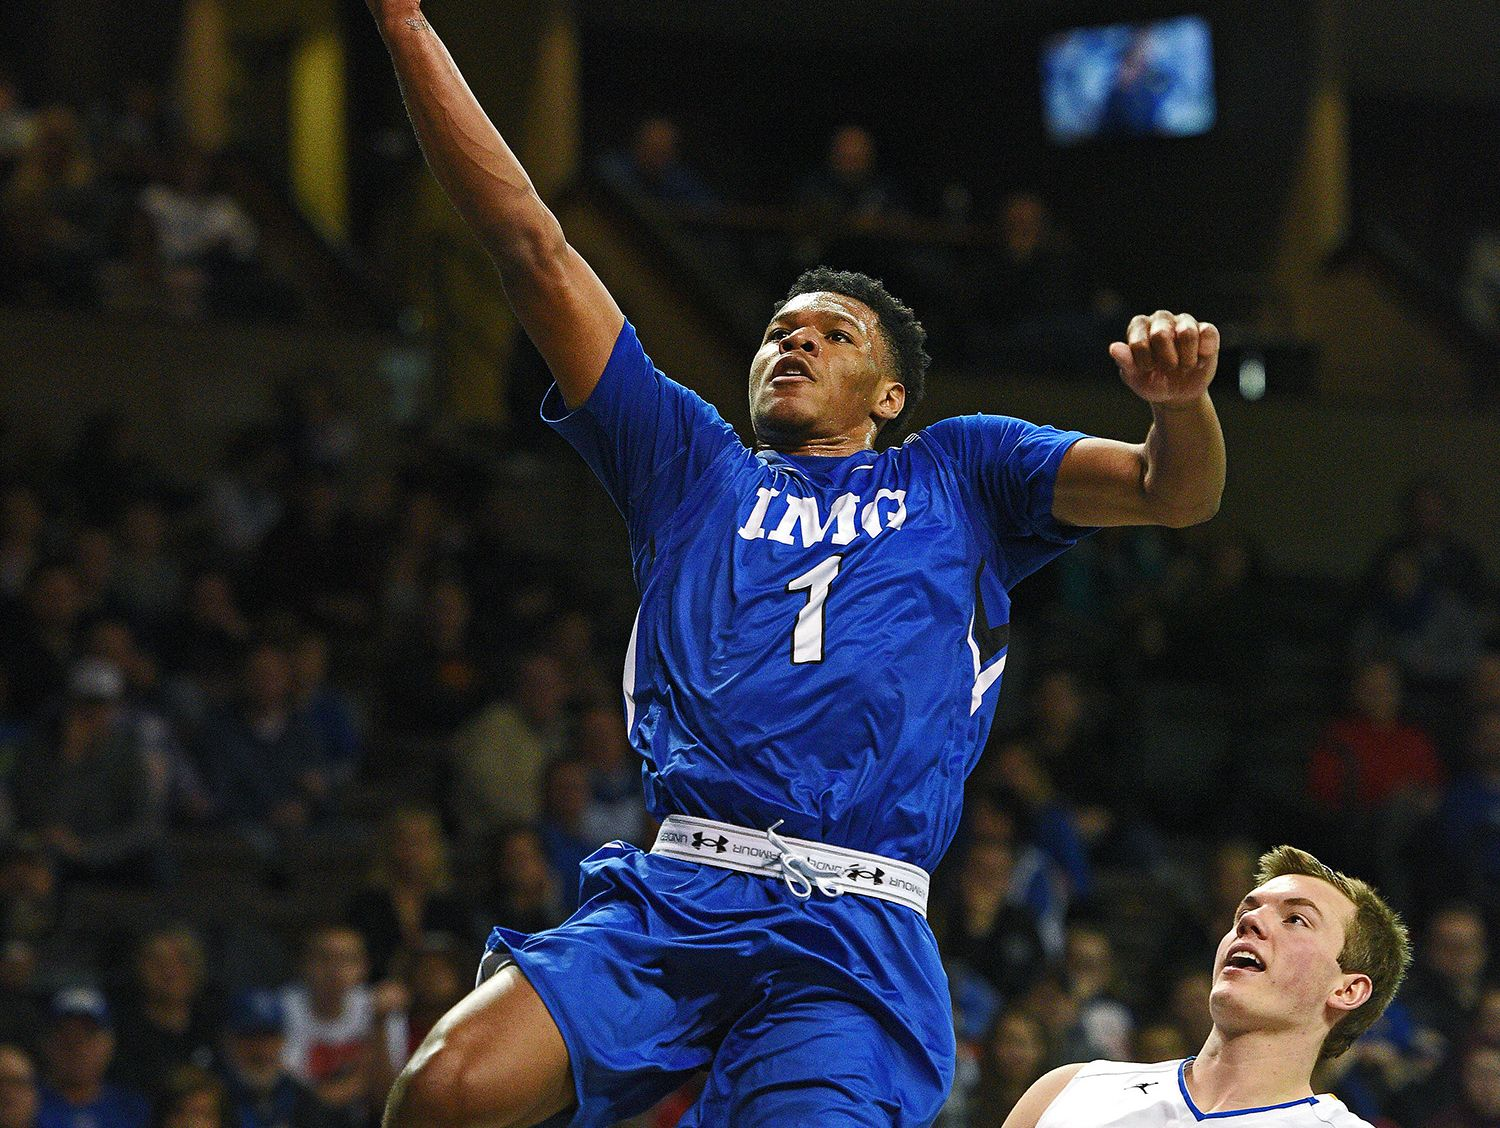 IMG Academy's Trevon Duval (1) goes up for a shot. (Photo: USA Today Sports)